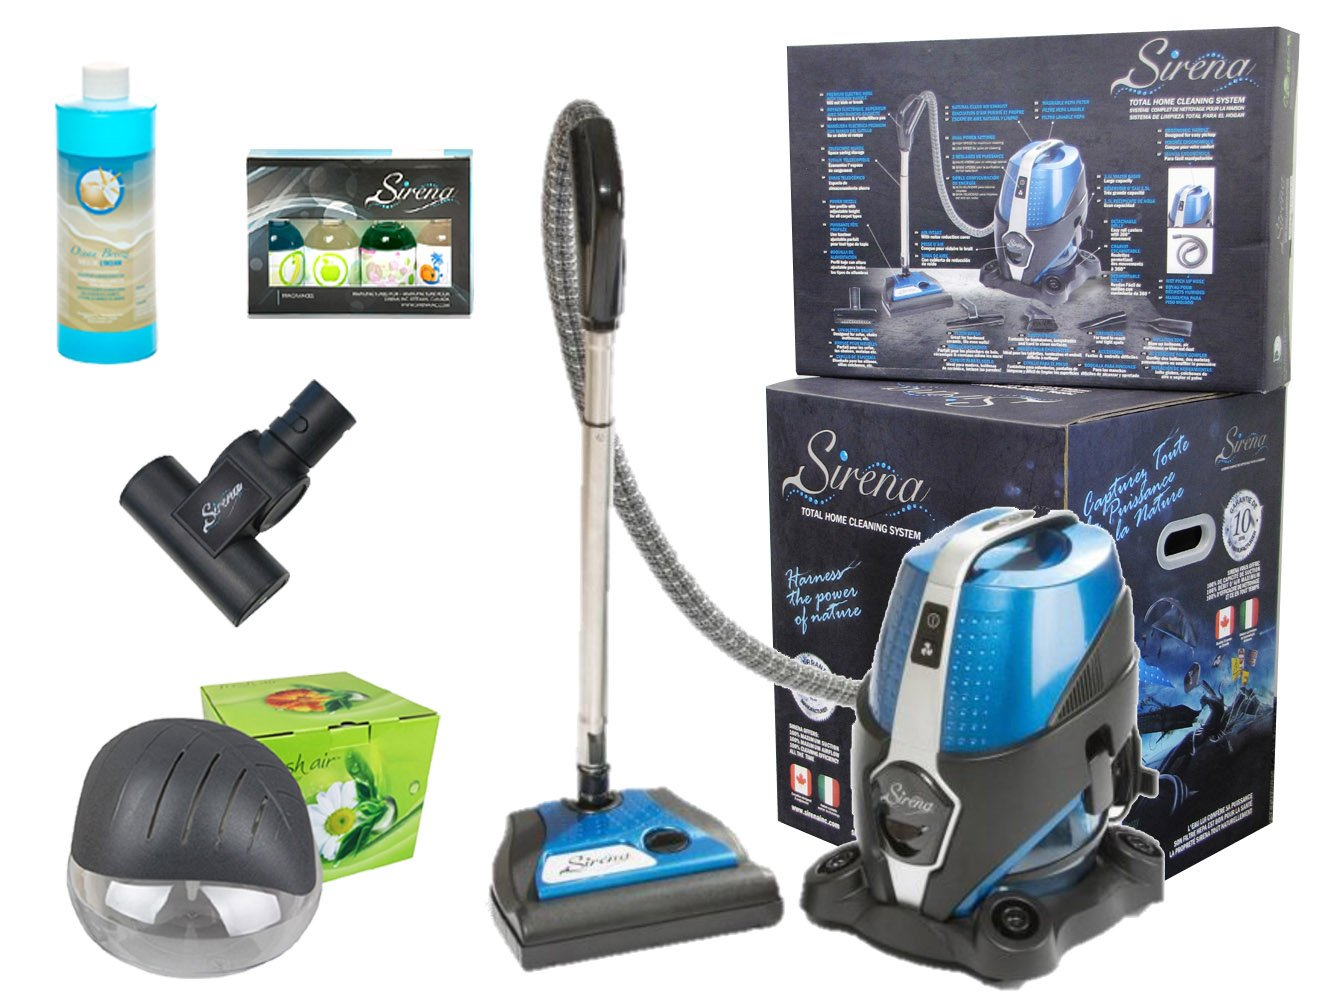 Sirena 2016 New 2-Speed Water Filtration Vacuum Cleaner Deluxe Total Home Care System With Bonus Rainbow Fragrance and Extras Exclusive Fresh Air Revitalizer Aroma Therapy Machine and 10 yr Warranty